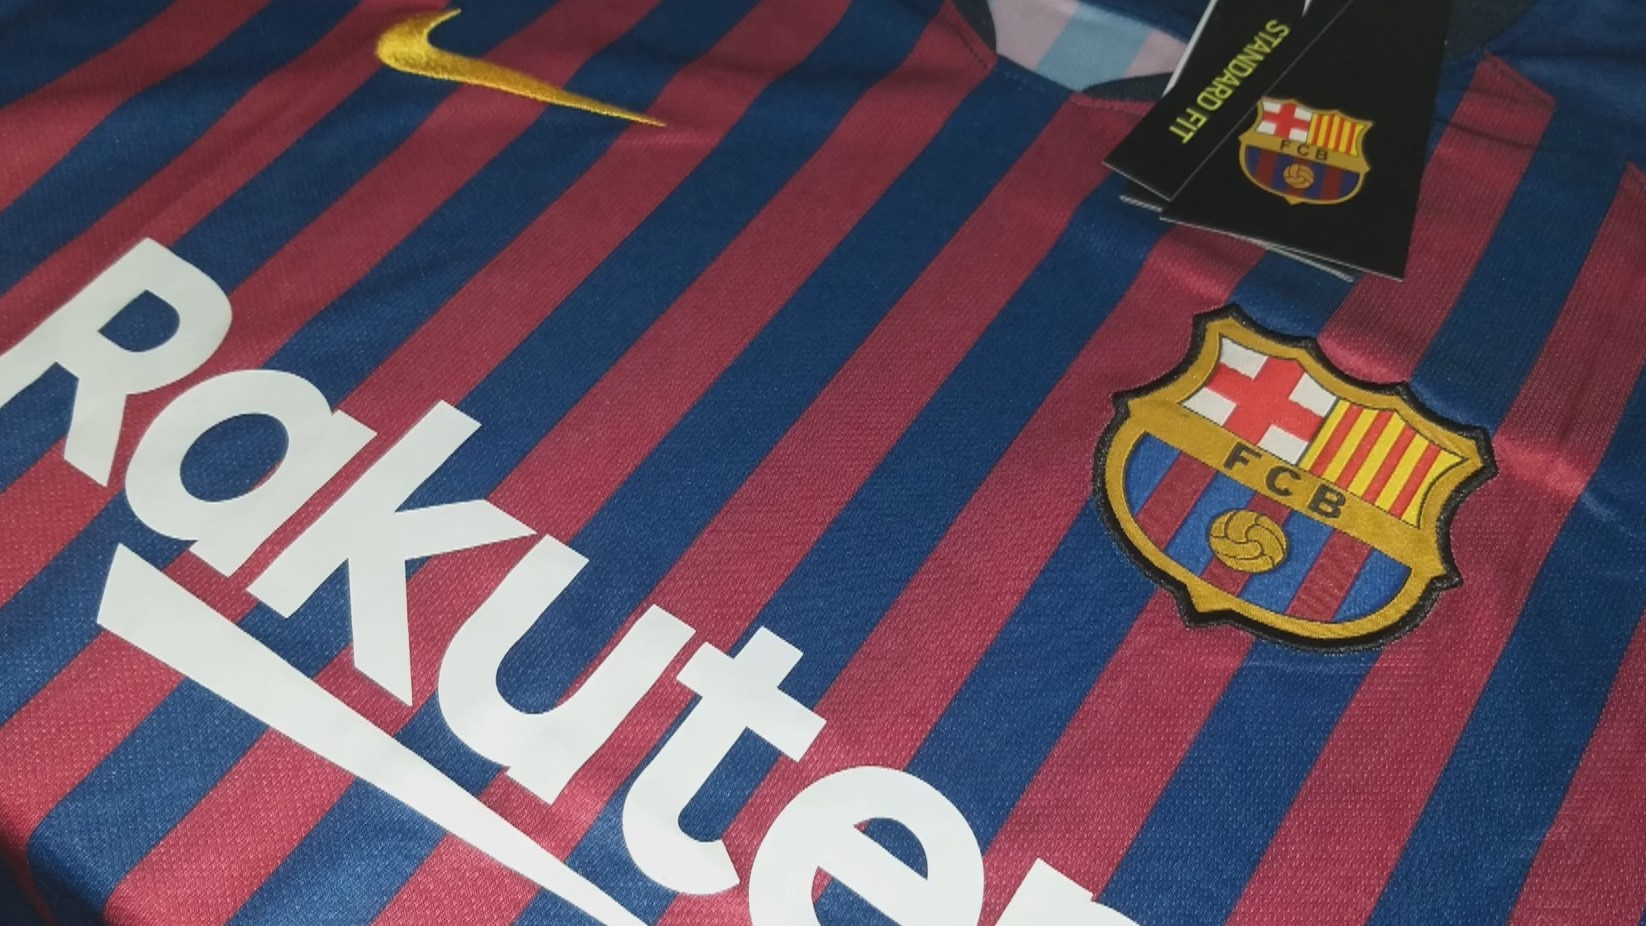 separation shoes b44e3 17c53 Messi FC Barcelona 18/19 Home Jersey